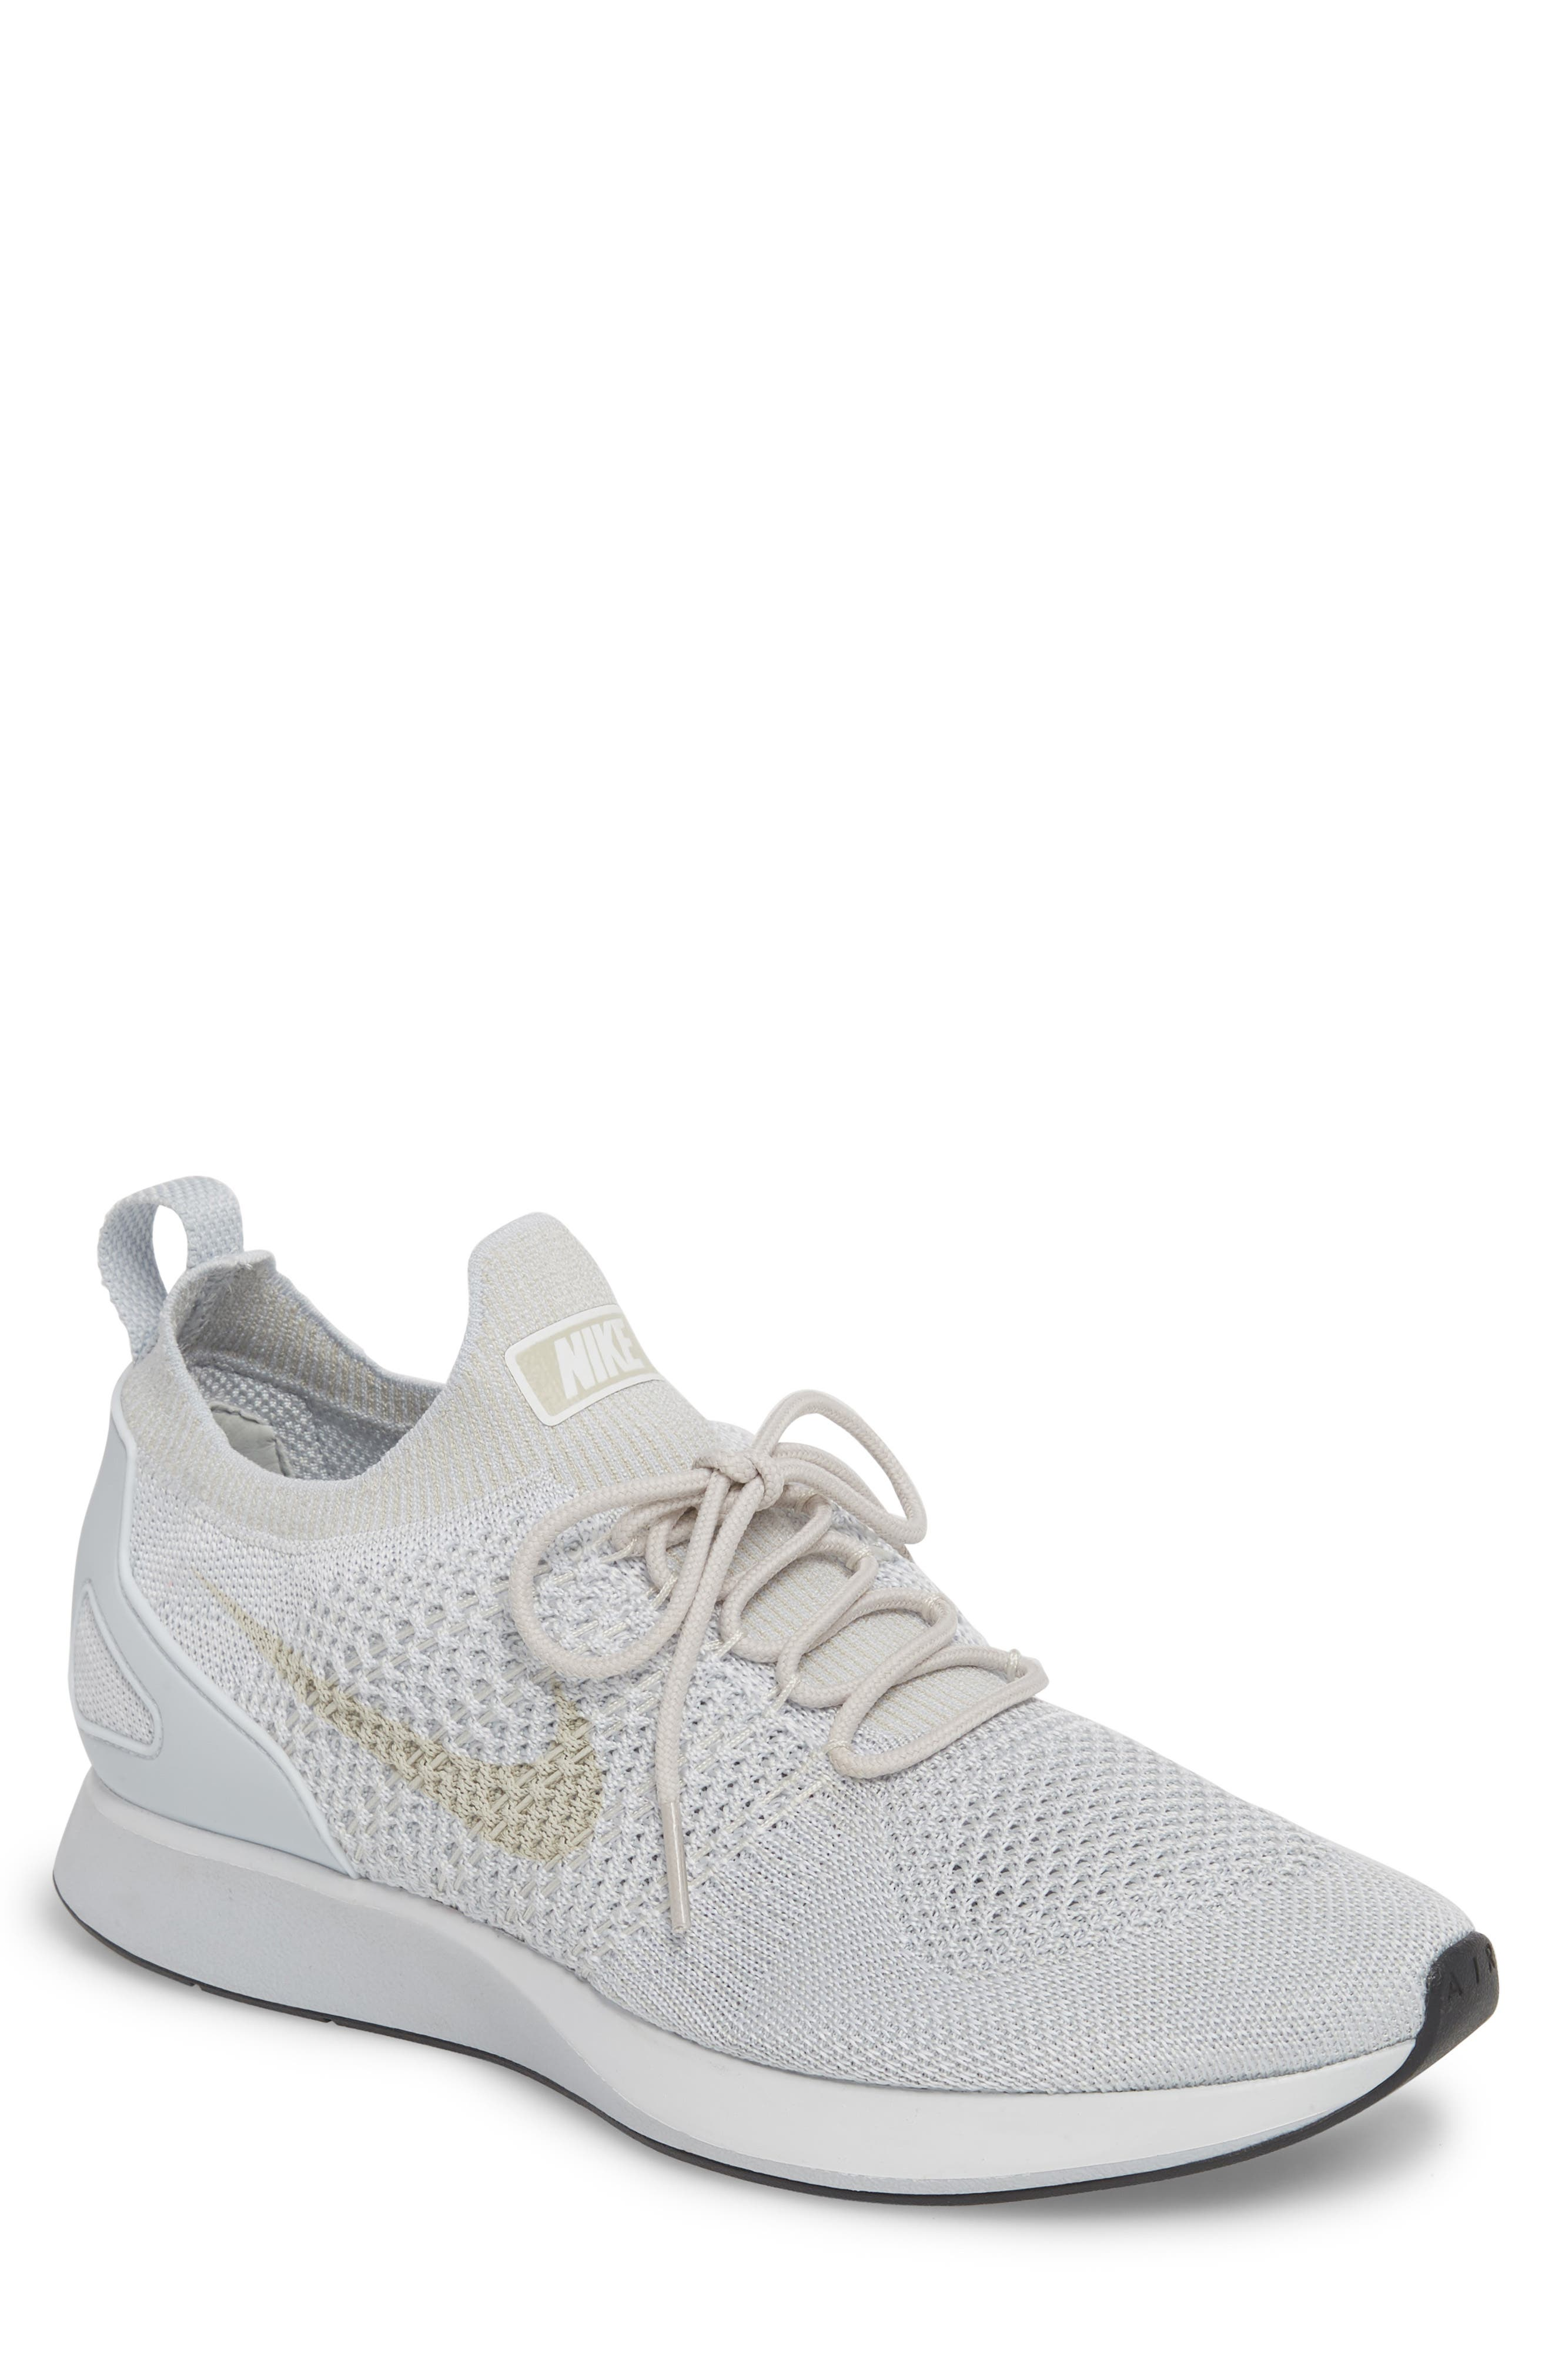 Nike Air Zoom Mariah Flyknit Racer Sneaker (Men)